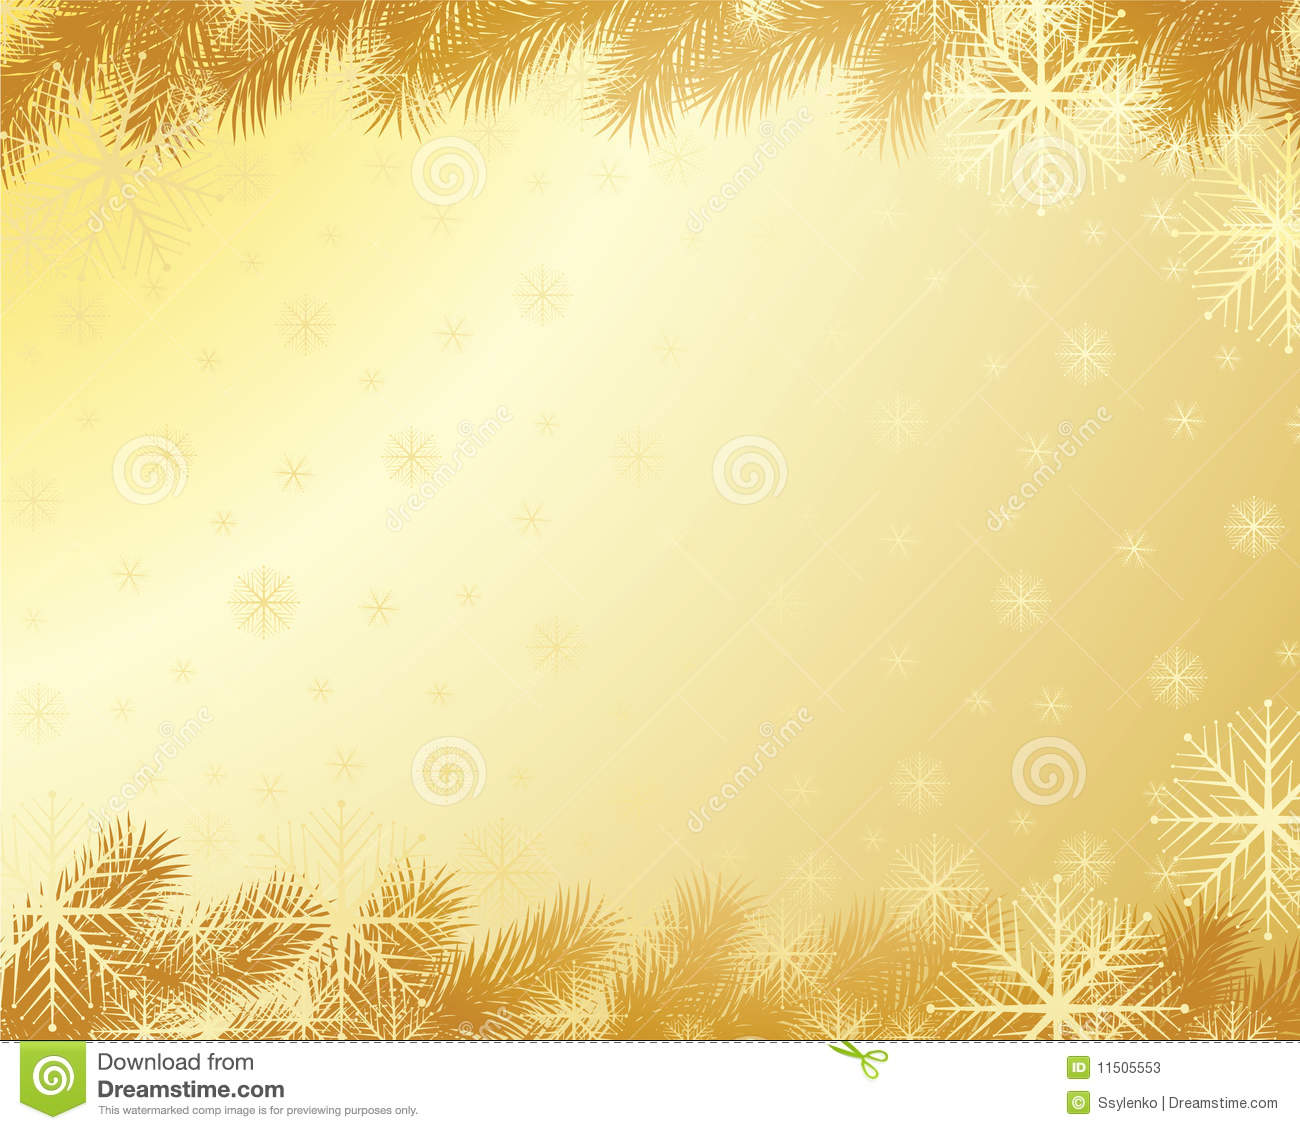 christmas gold background golden -#main